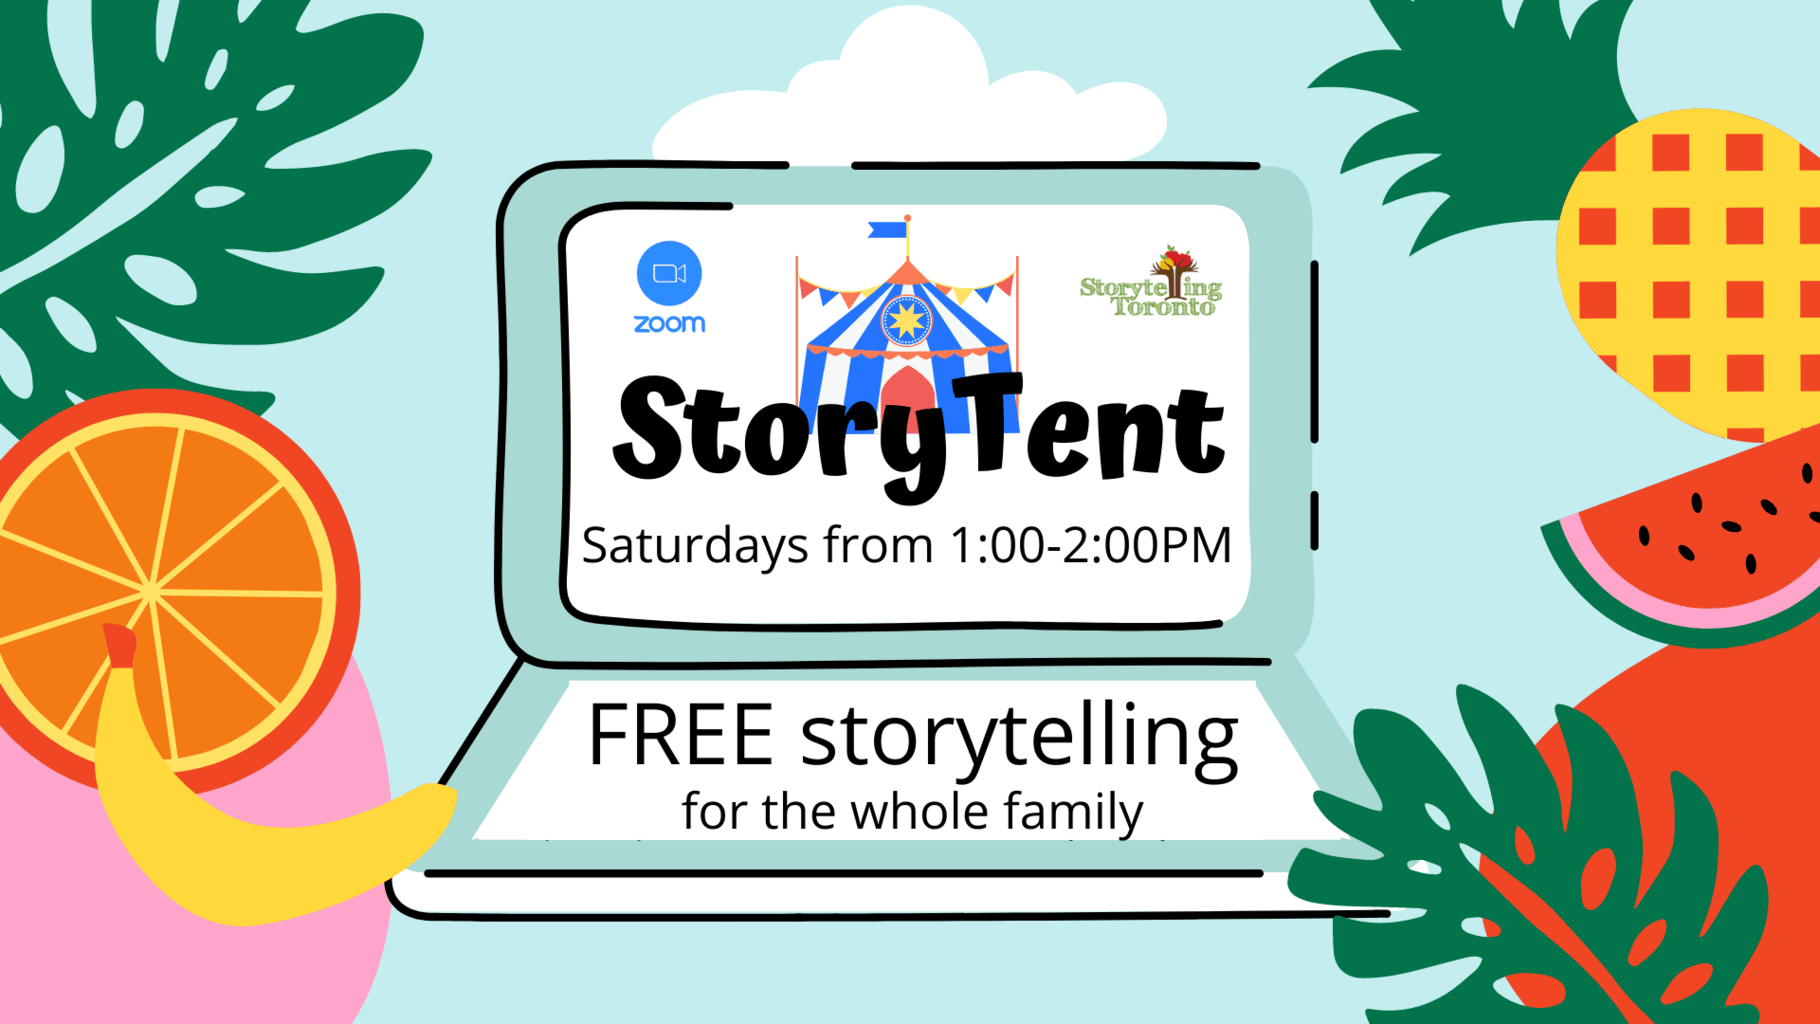 Story Tent